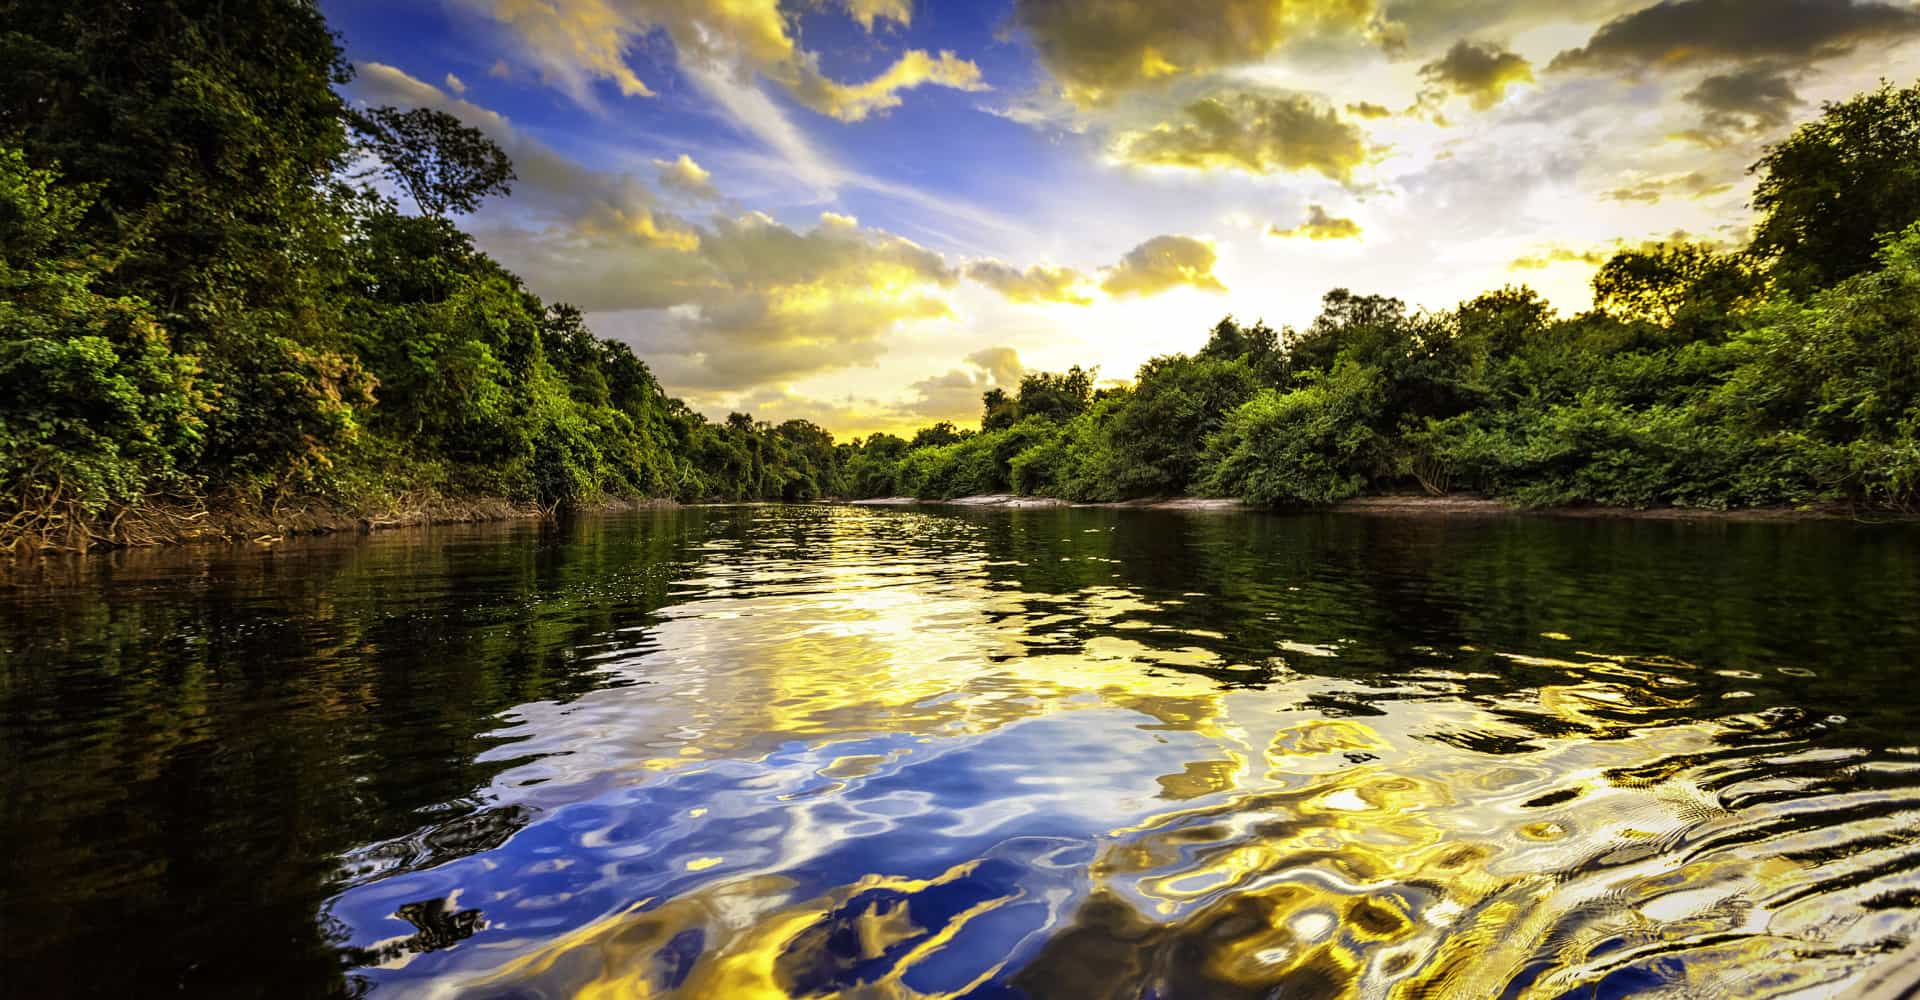 The Amazon: the lungs of the planet